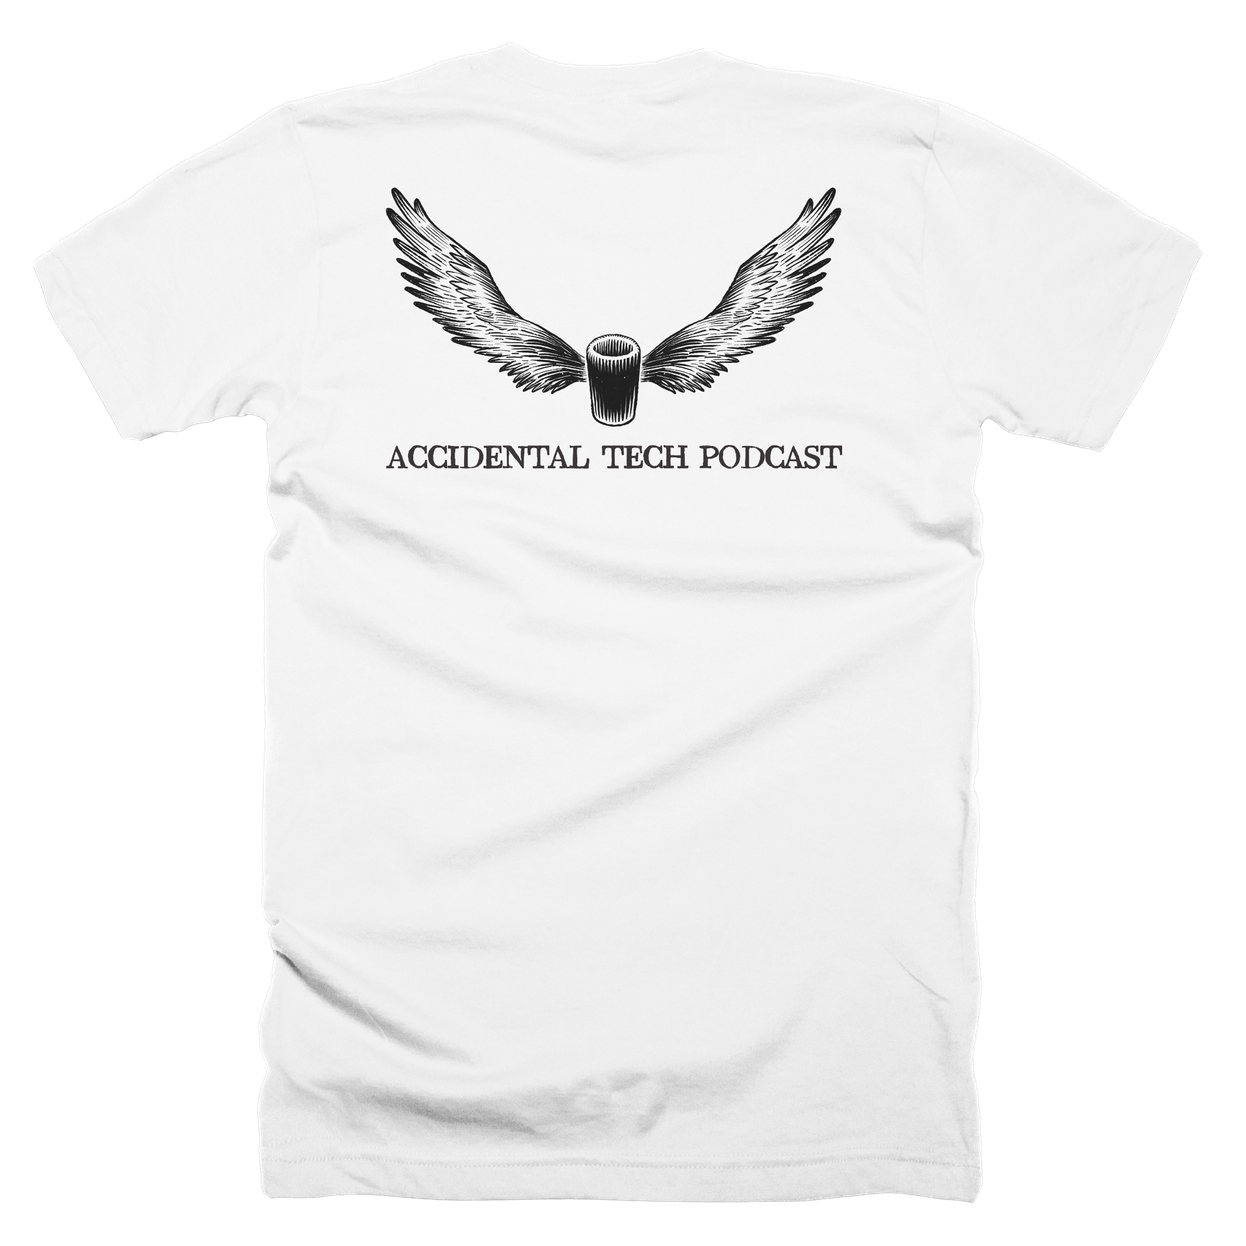 Mac Pro Angel Shirt (White) - The 2013 Mac Pro has haunted ATP since its release. Is it now ascending to heaven, or is it a vengeful angel of death?The image shown is the back of the shirt; the front shows a small ///ATP logo.Available in black and white, tri-blend or 100% cotton.Buy now!